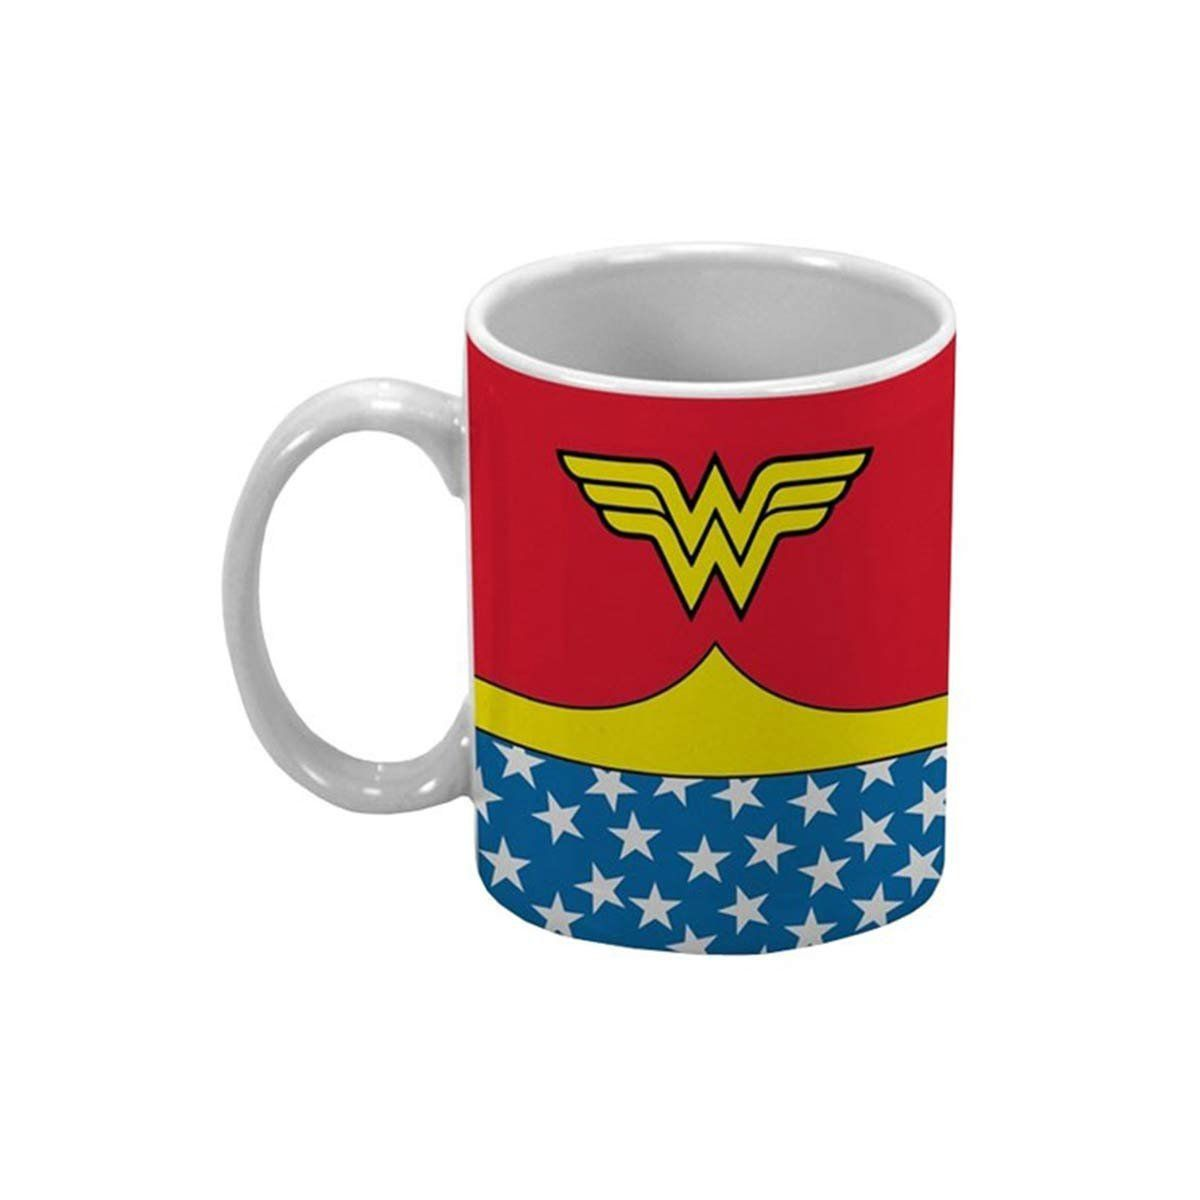 Mini Caneca de Porcelana Wonder Woman Body Customs Oficial  - bandUP Store Marketplace